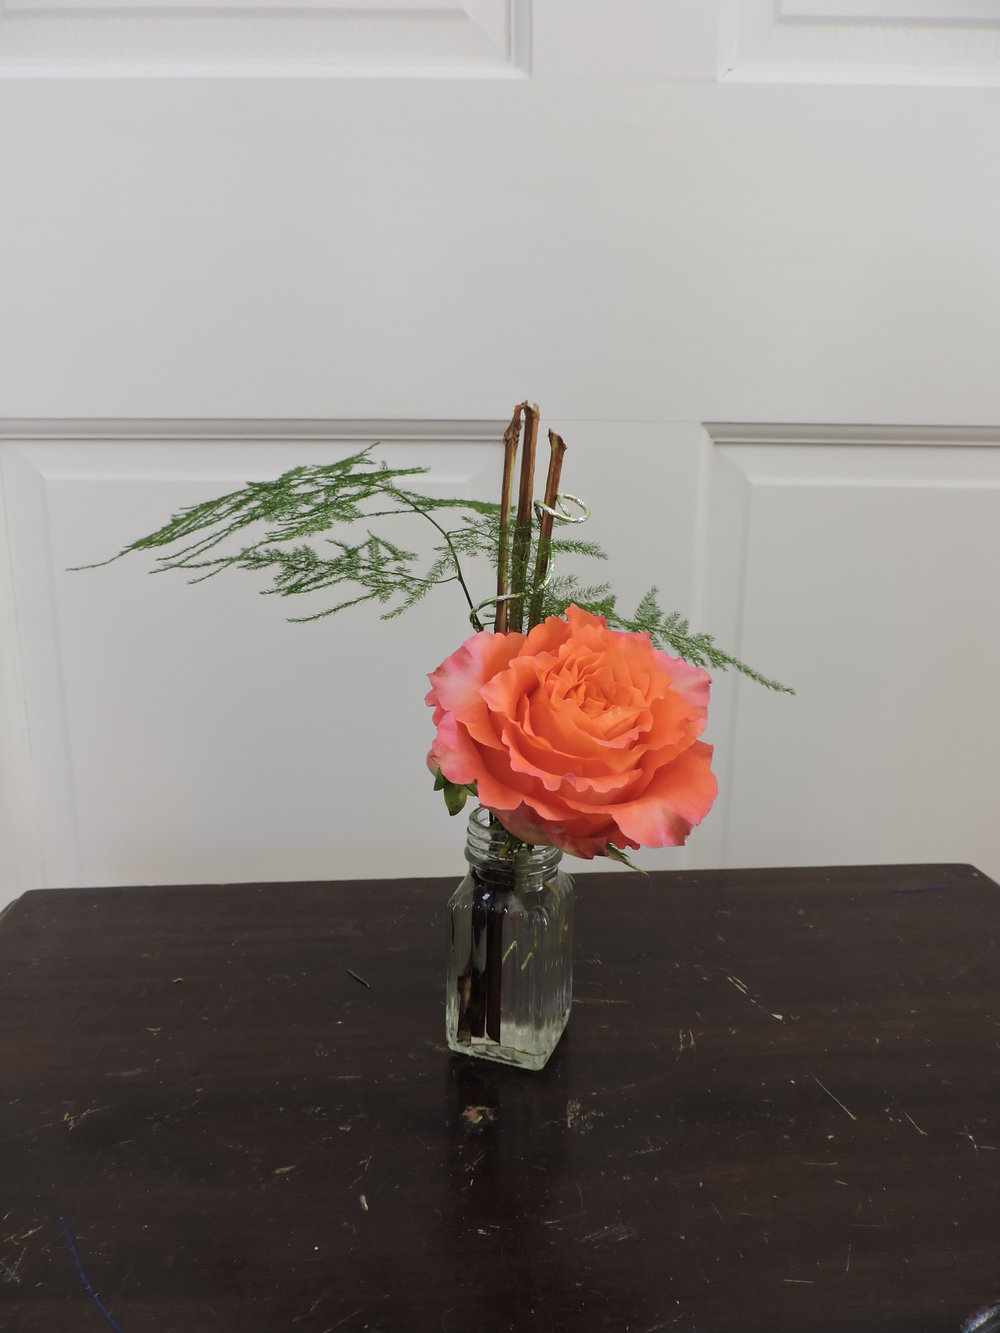 A beautiful rose, plumosa fern and twigs wrapped with decorative wire. Shaker Hills County Club